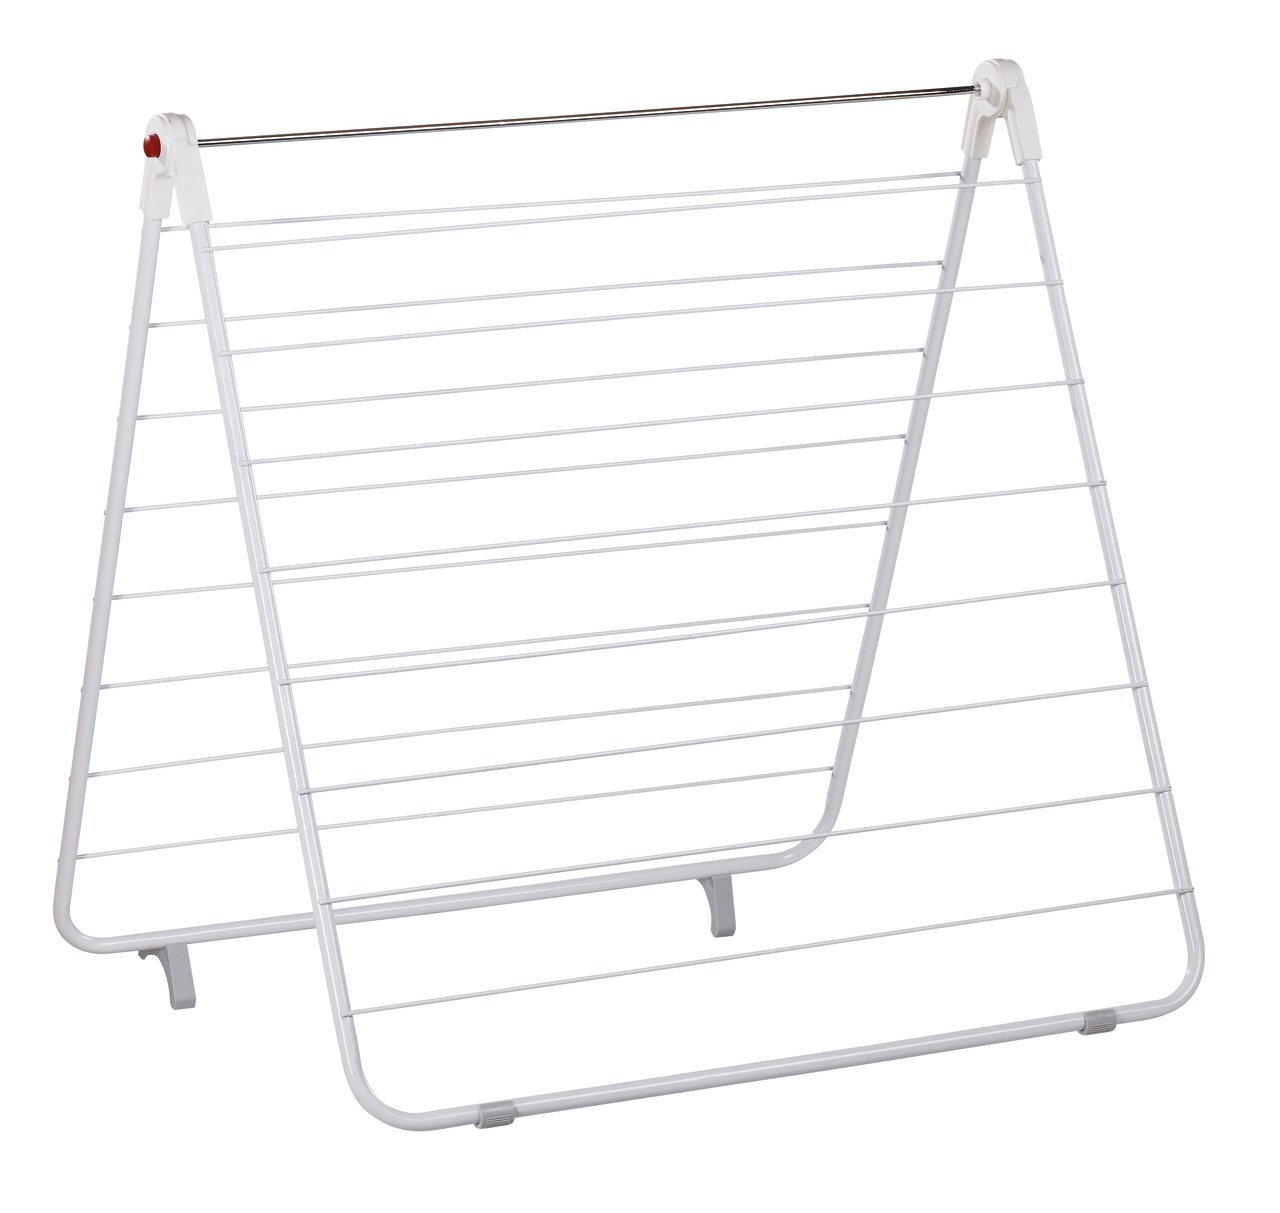 Leifheit Adria 110 Bathtub Dryer - Sturdy high Quality laundry dryer for bathtub Drying length 12.03 yard Three possibilities to use it: laid flat over the bathtub, standing V-shaped on the edge of the bathtub or L-shaped angled over the bathtub - laundry-room, entryway-laundry-room, drying-racks - 61lwVSazIUL -